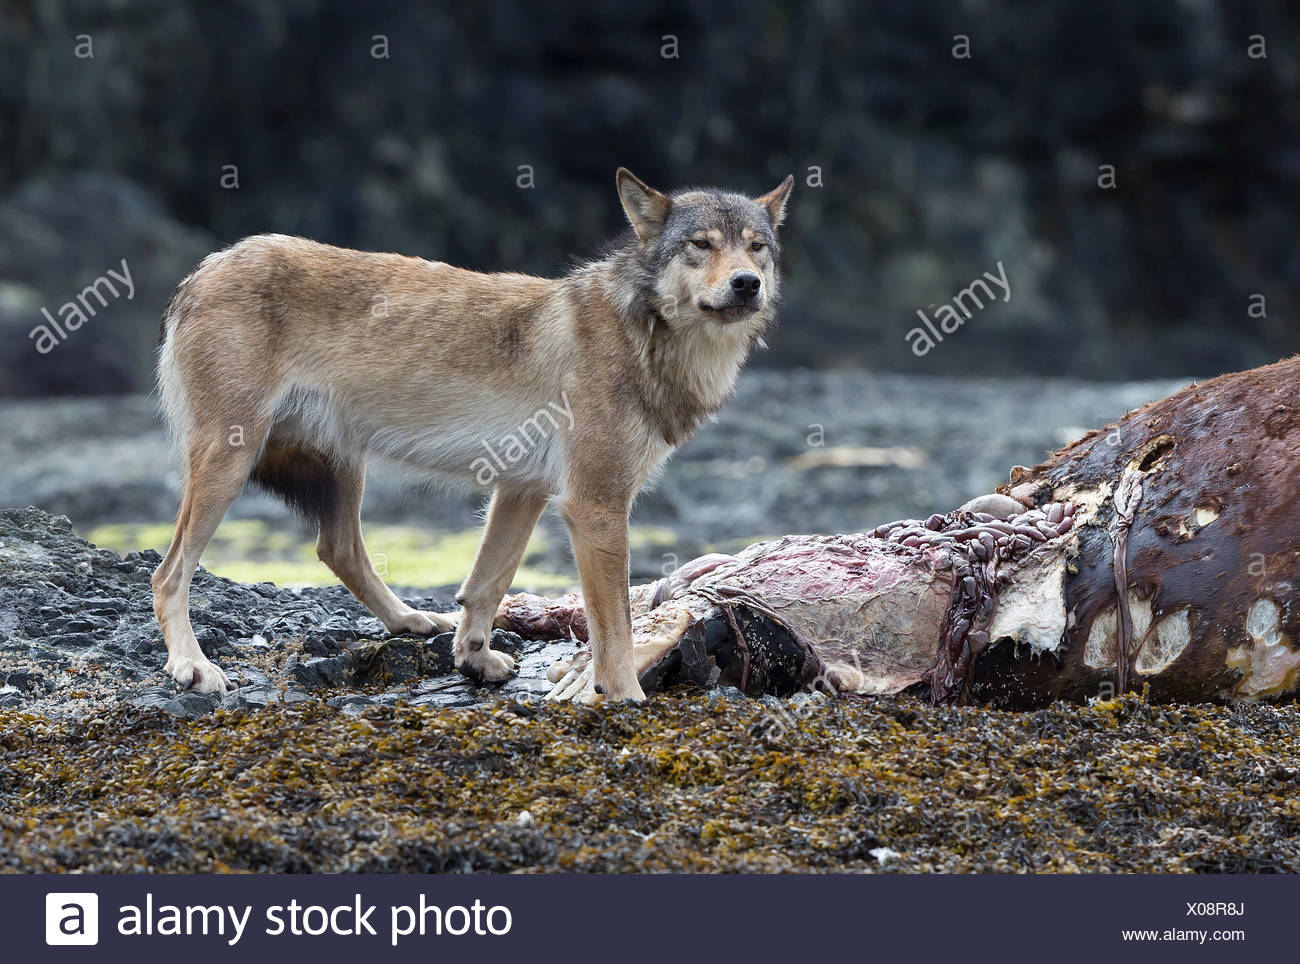 A wolf feeds on the dead carcass of a Stellar sea lion washed up on an island near Kyuquot, Vancouver Island, British Columbia, Canada - Stock Image